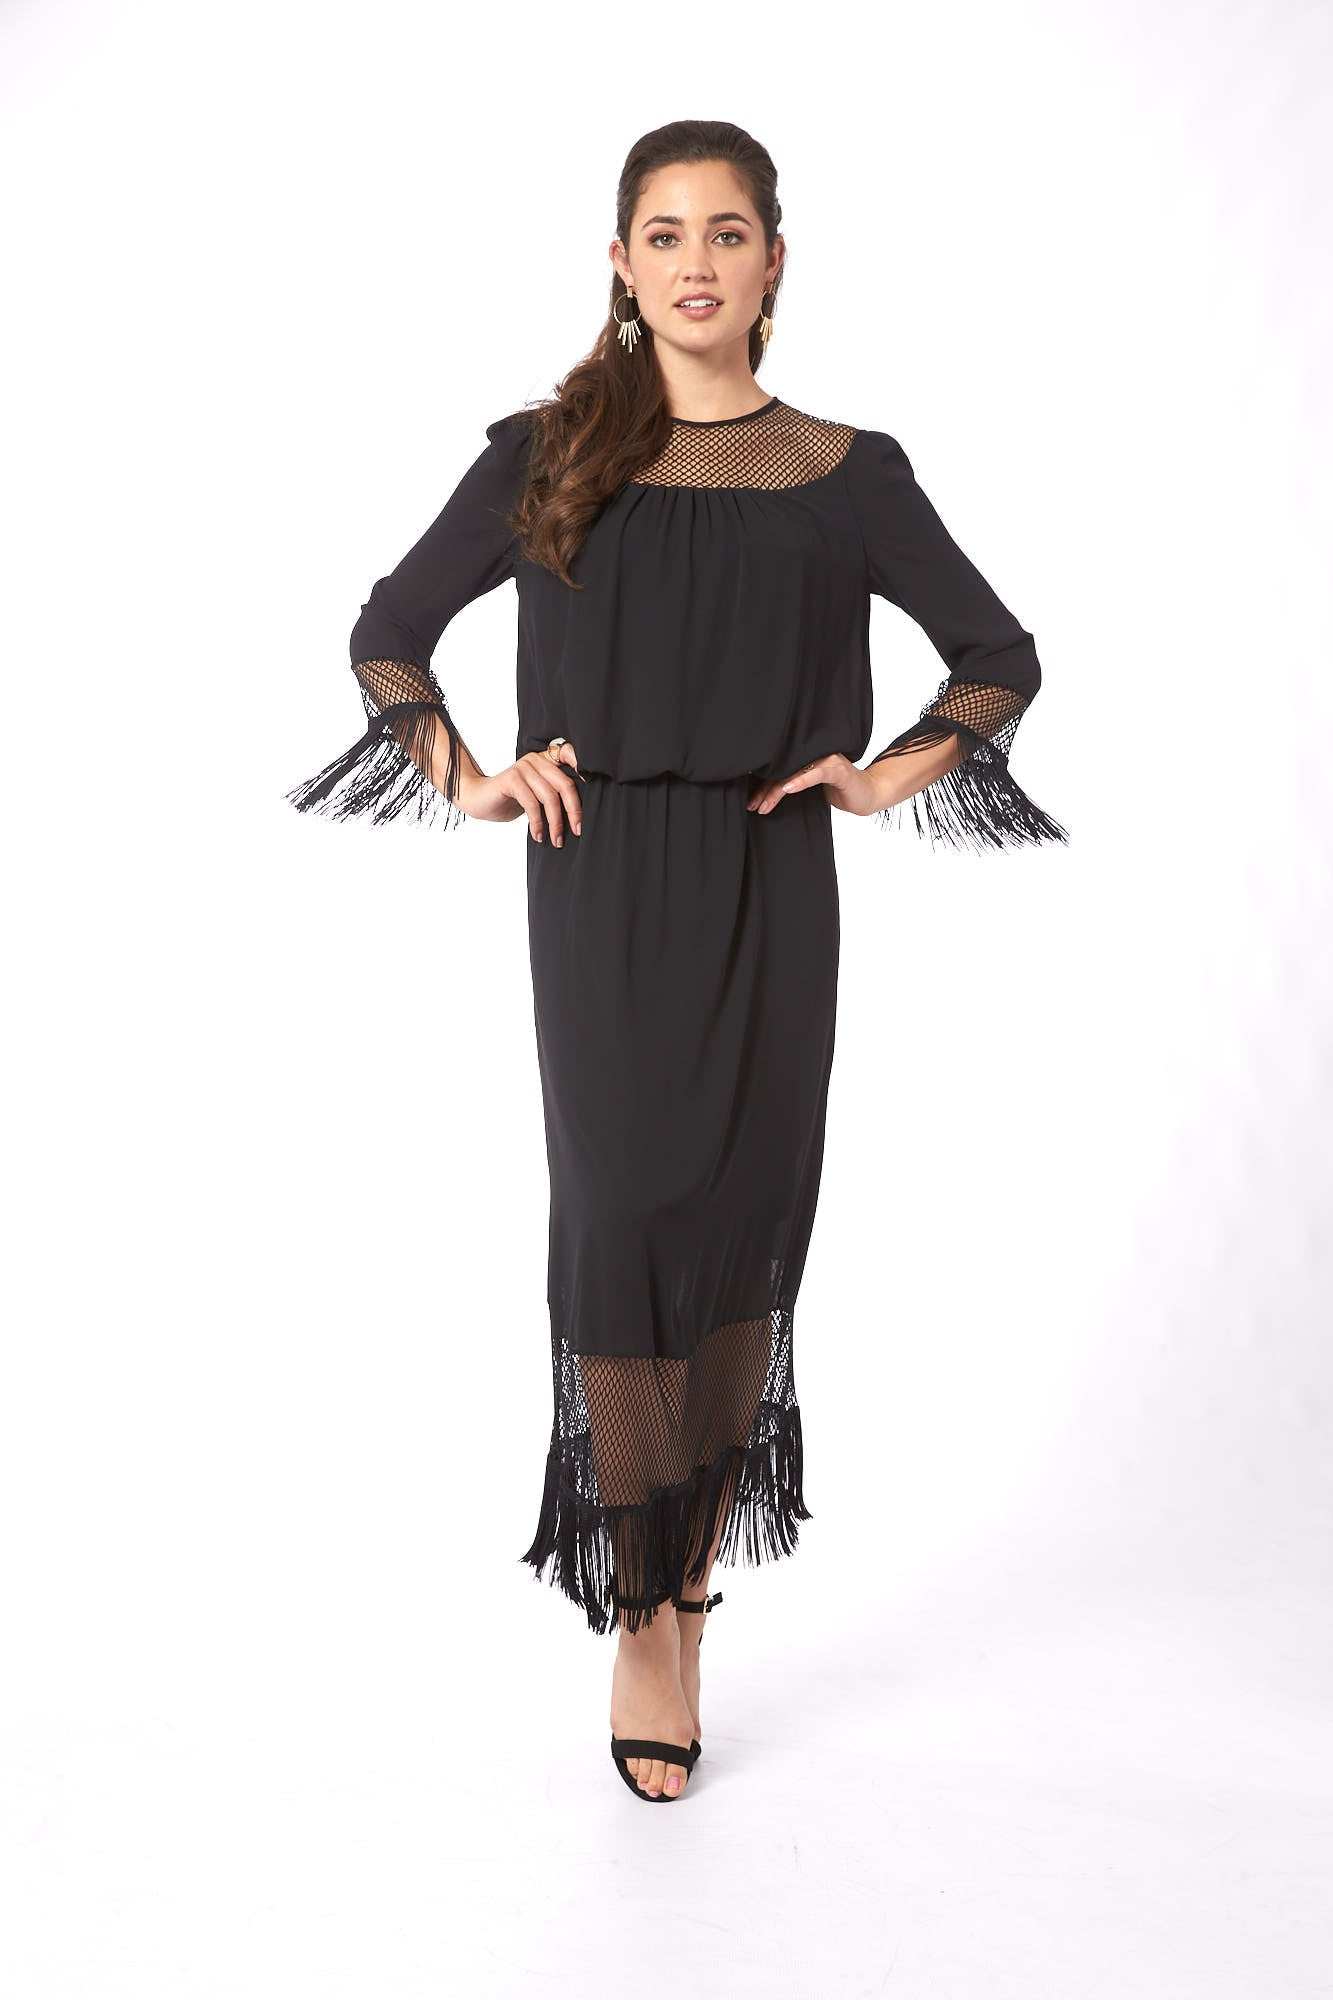 Big Girls Don't Cry in Amsterdam Black Maxi Dress